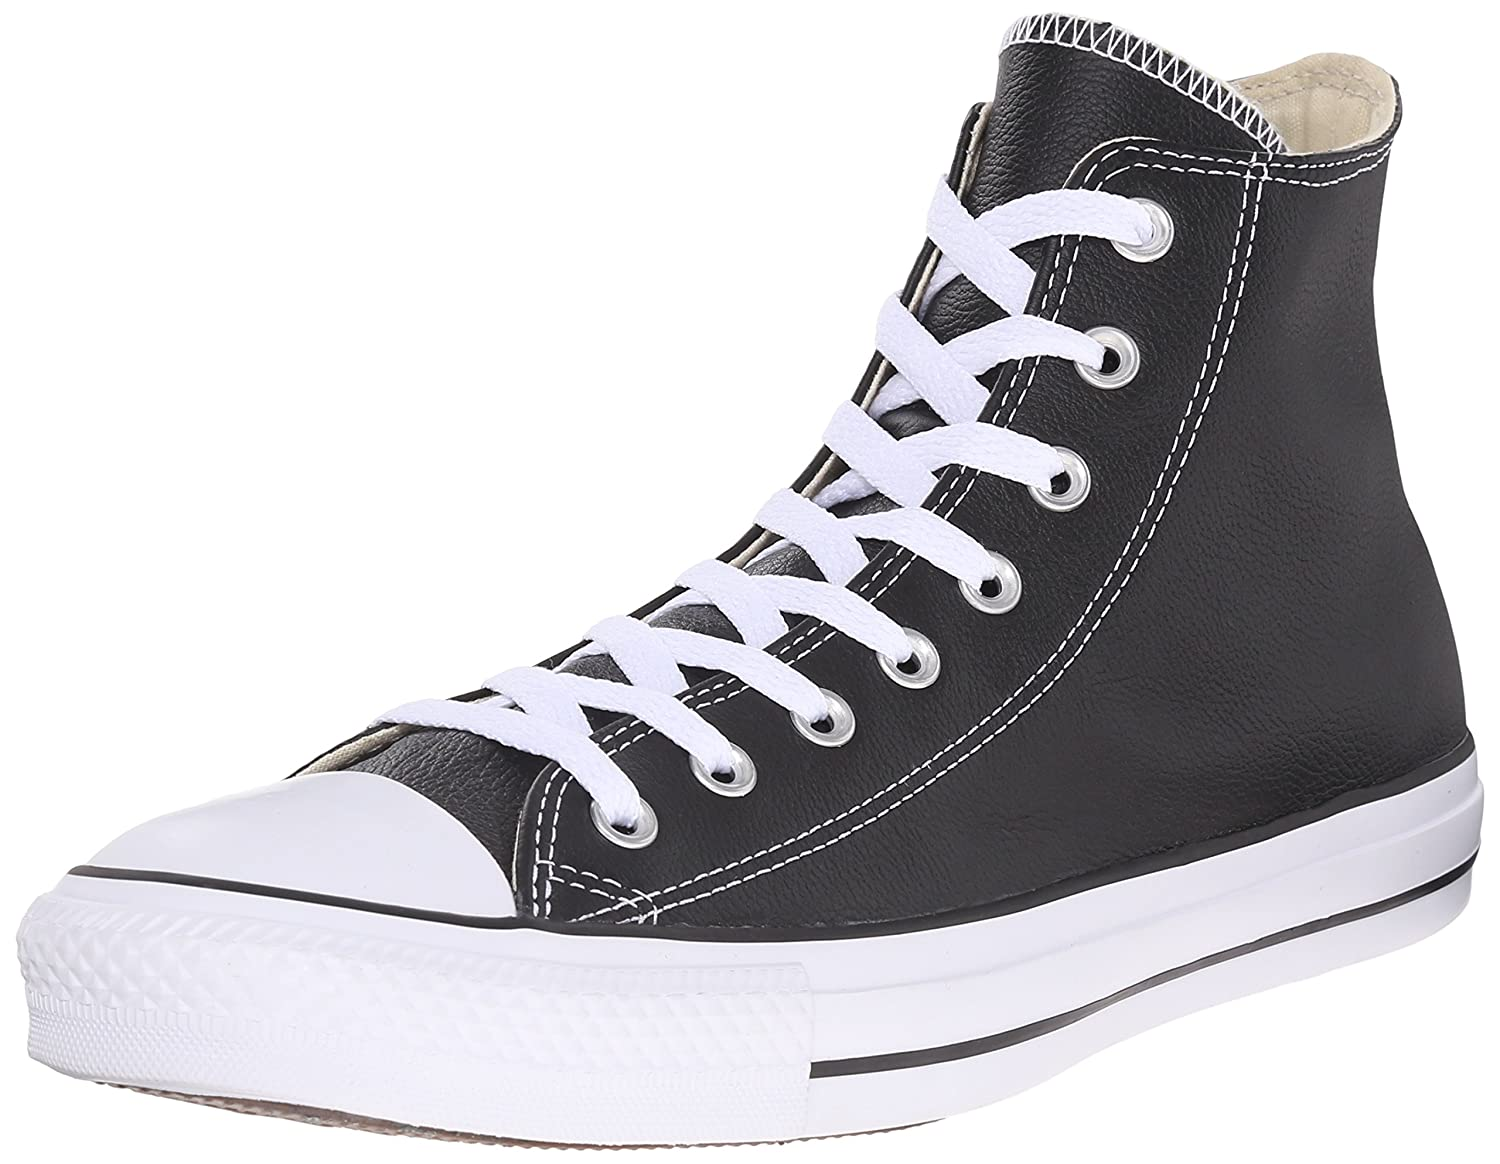 Converse Chuck Taylor All Star Leather High Top Sneaker B003PK64DY 10.5 B(M) US Women / 8.5 D(M) US Men|Black Leather